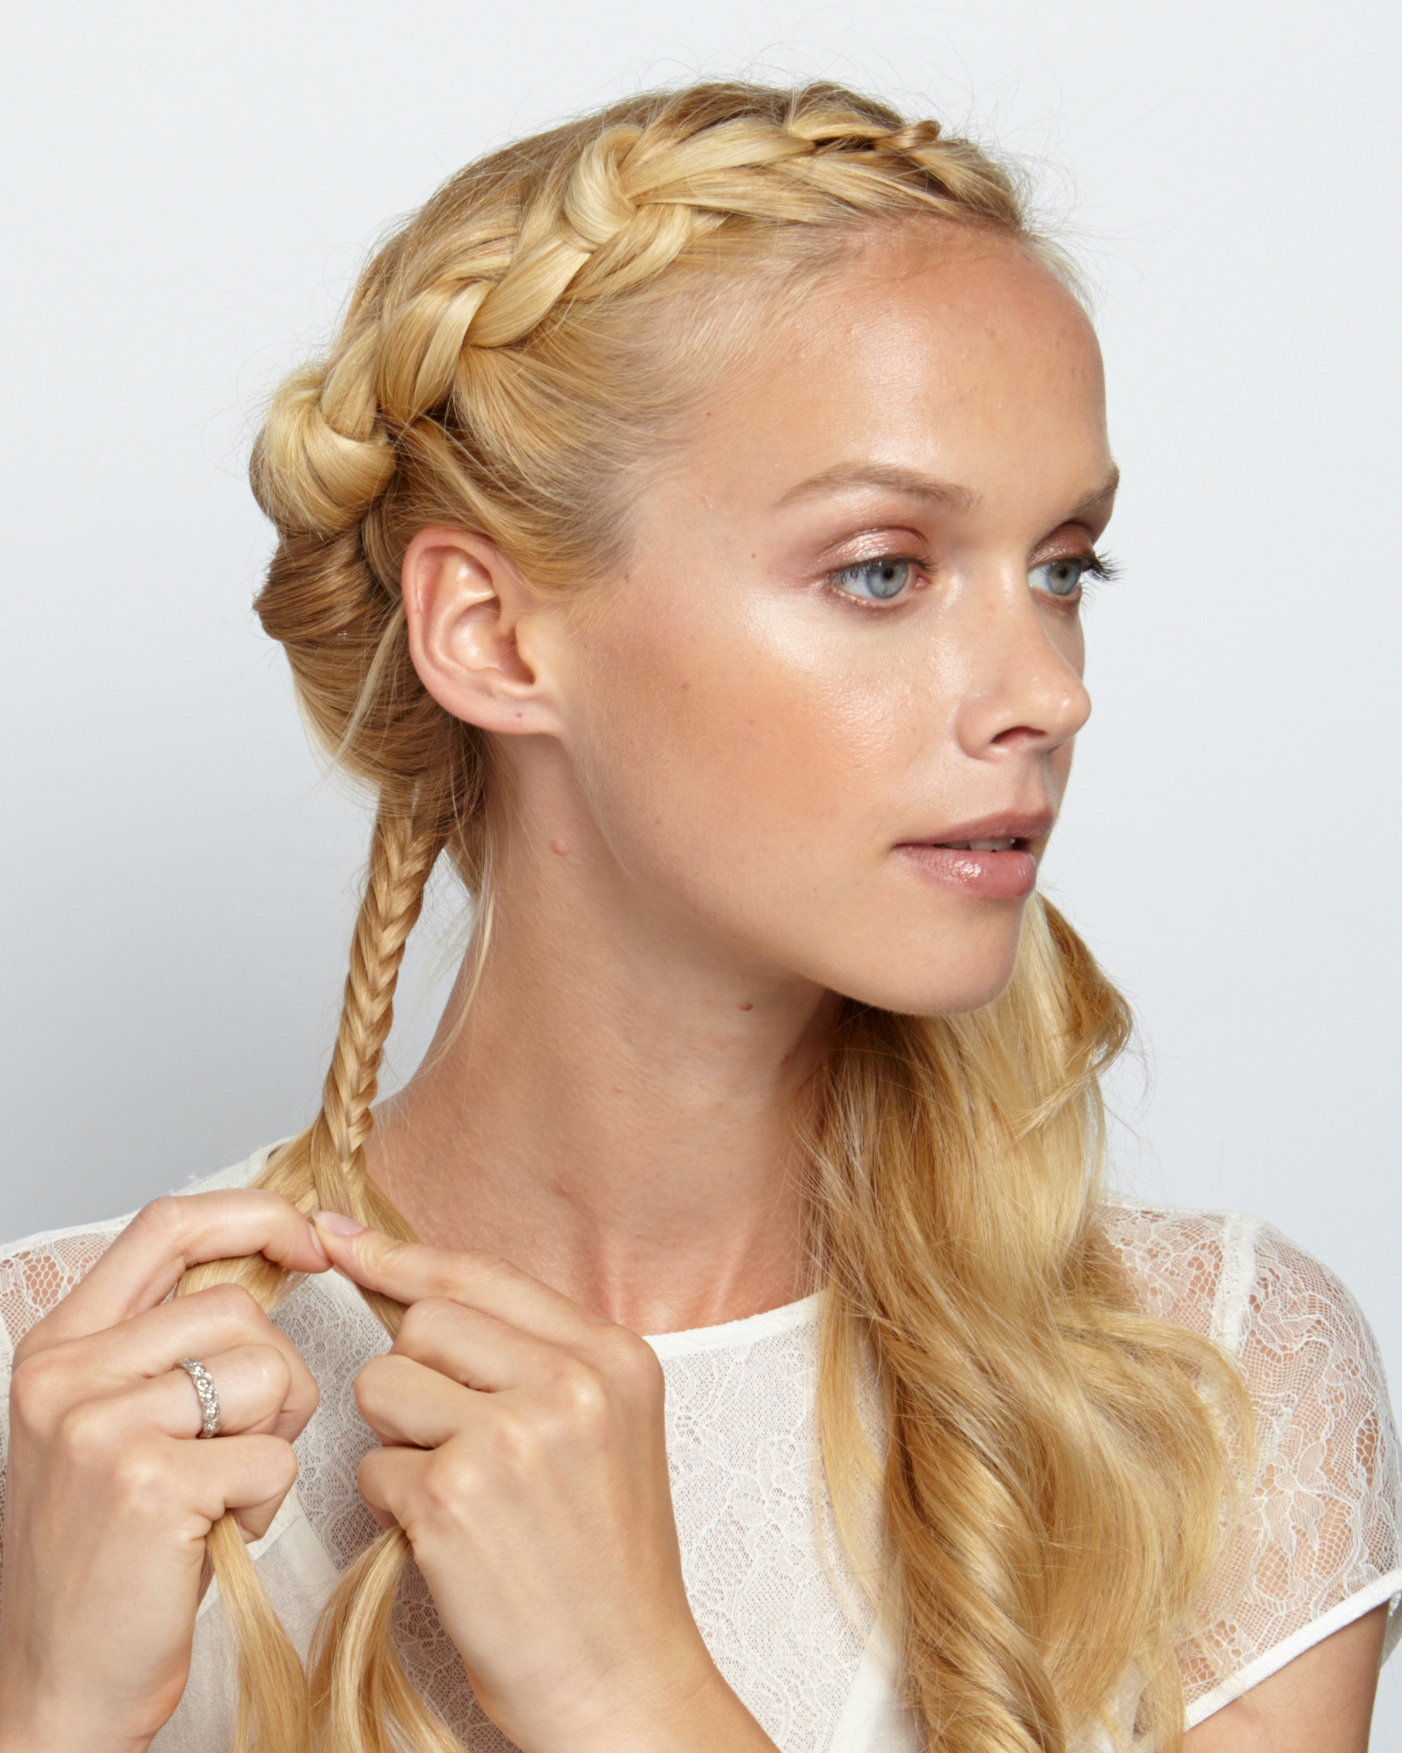 hidden-braid-step-2-5021-d111417-1014.jpg